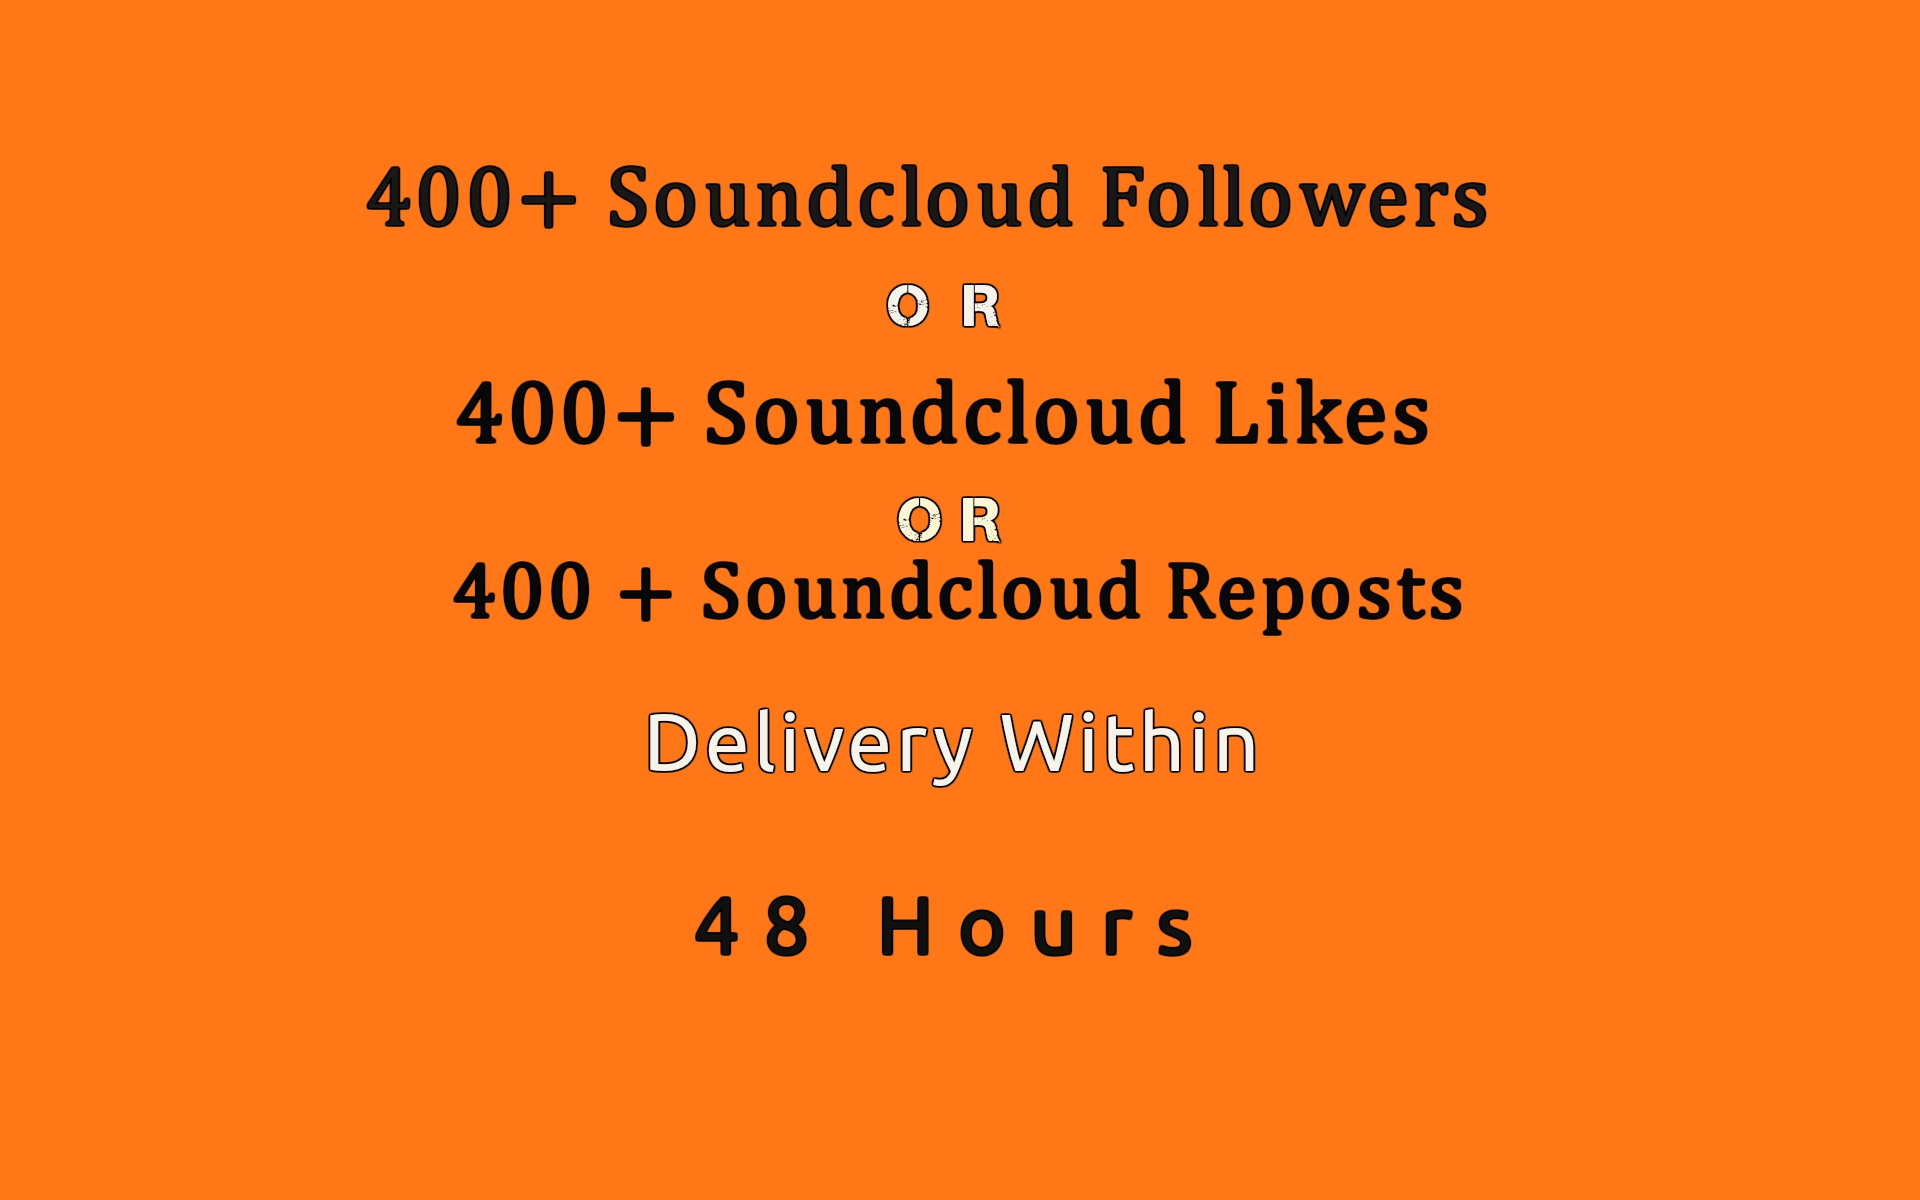 400+ soundcloud followers or likes or reposts